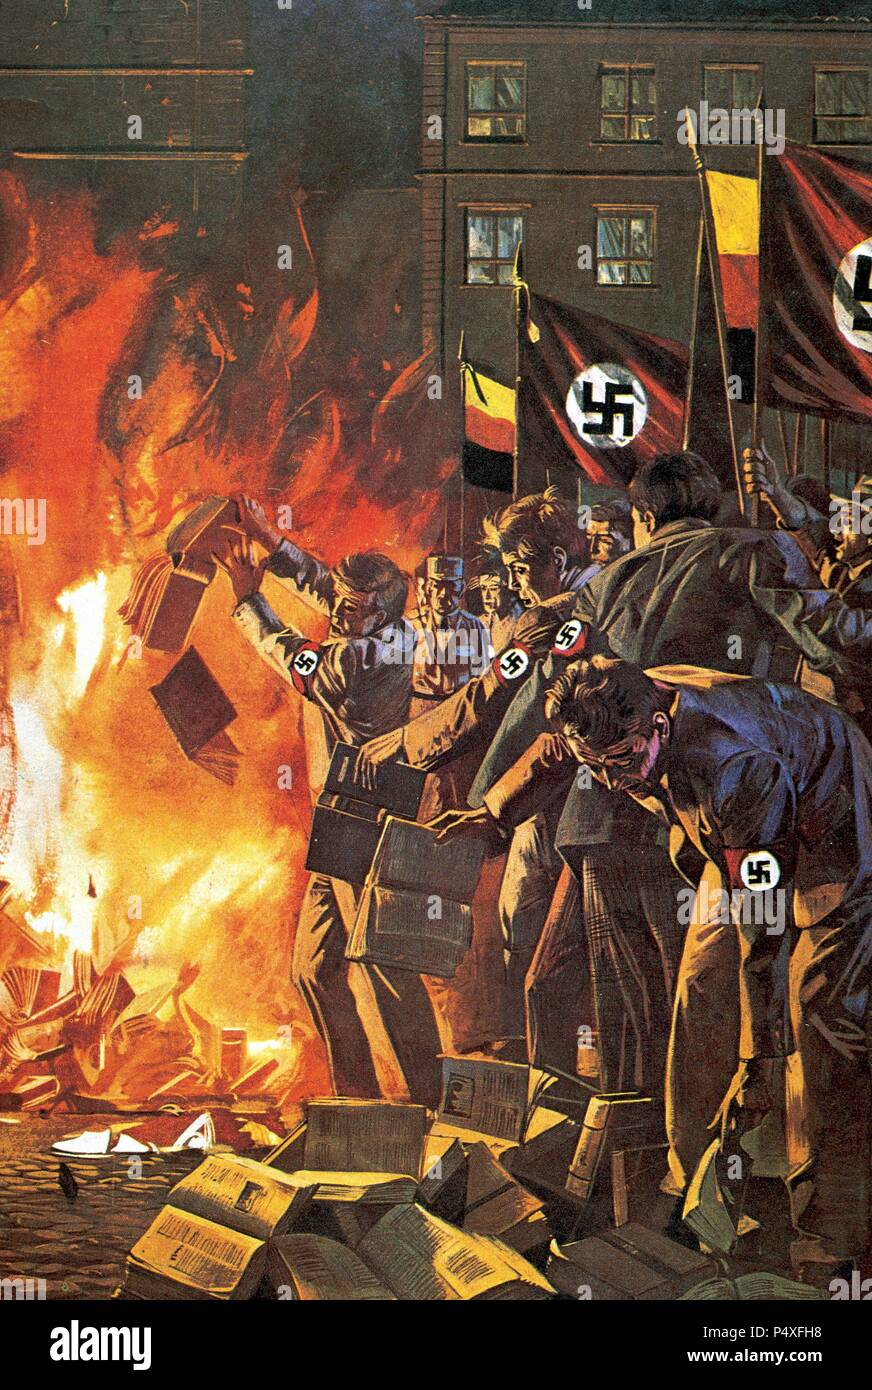 Nazism. Burning of books unrelated with the regime. Drawing. Stock Photo